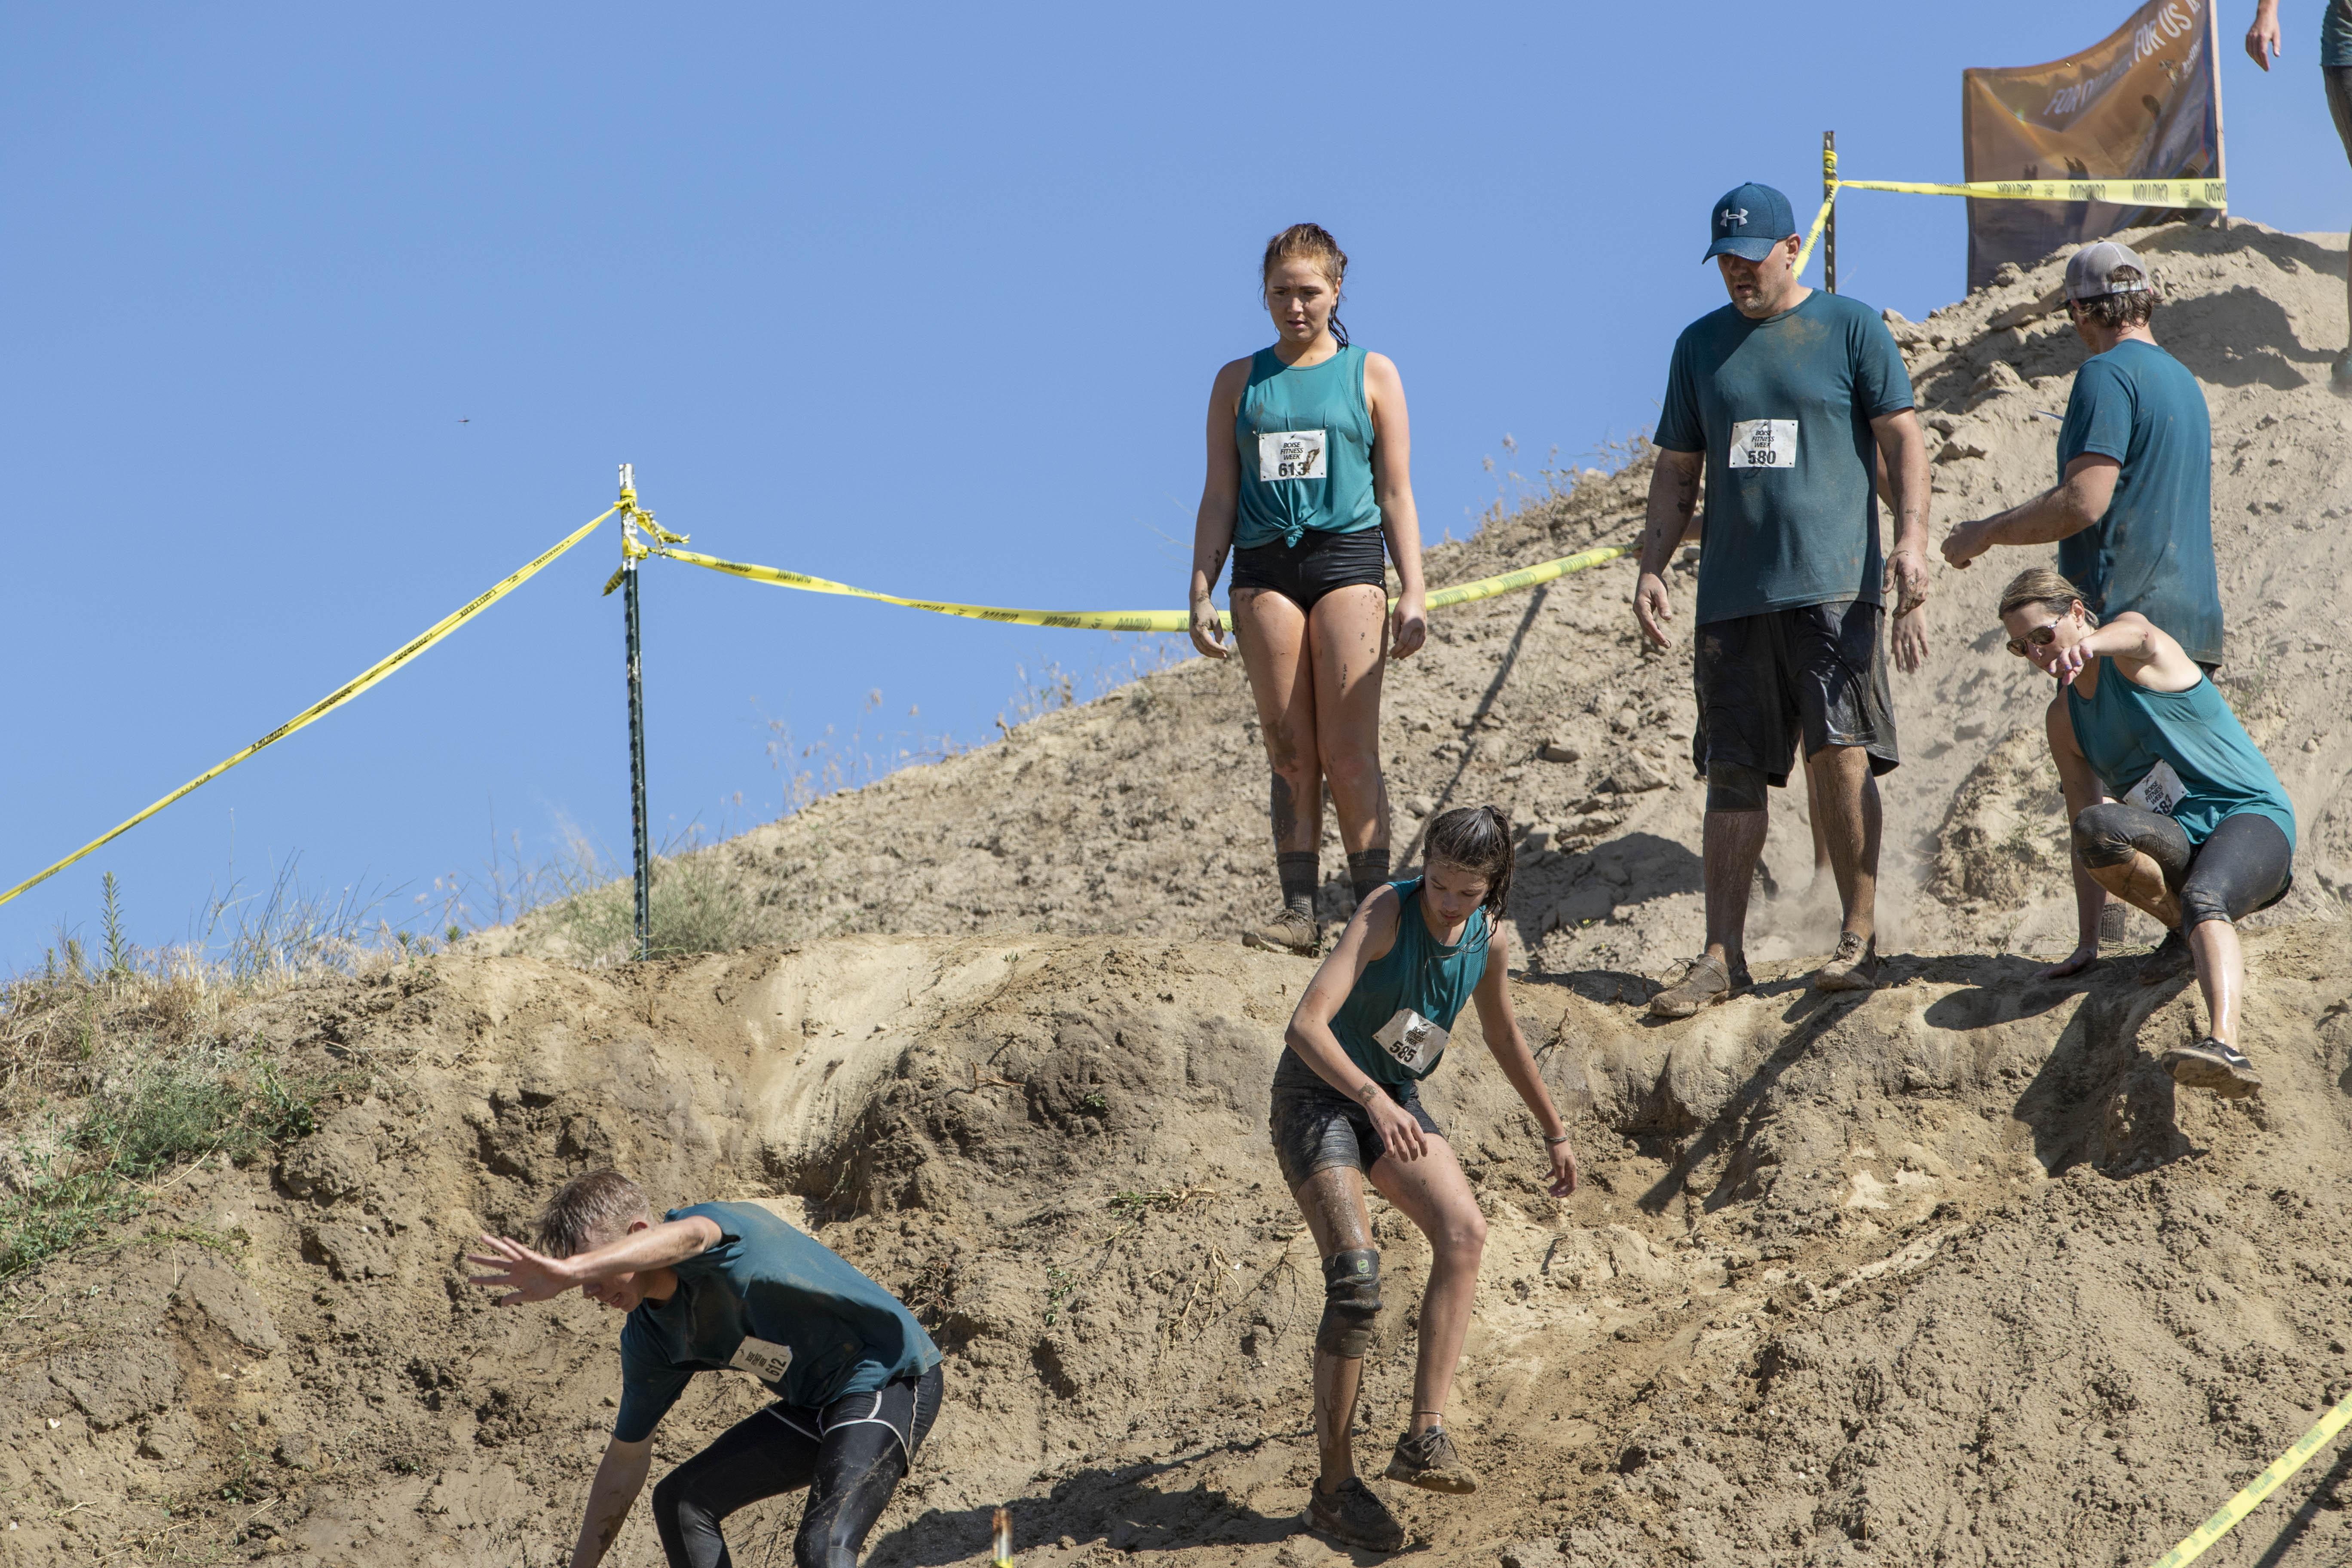 The 6th Annual Tater Dash Mud Run took place at Twin Oaks Farms in Eagle on Saturday, July 20. The run is just over five miles and features many different obstacles such as large mud pits and steep slippery hills. (Photos by Axel Quartarone){ }